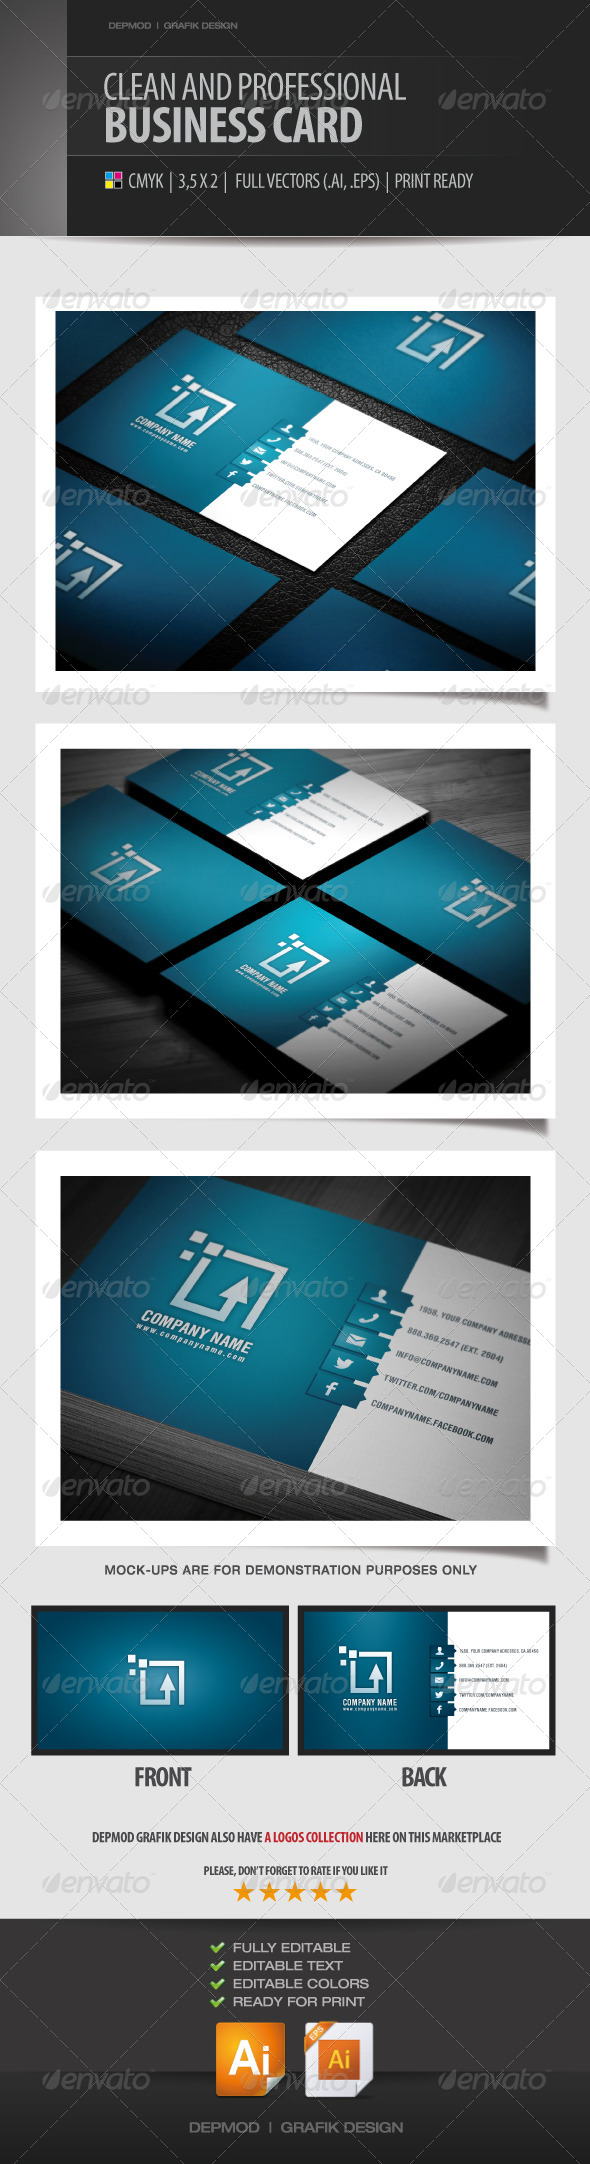 Corporate And Professional Business Card - Corporate Business Cards